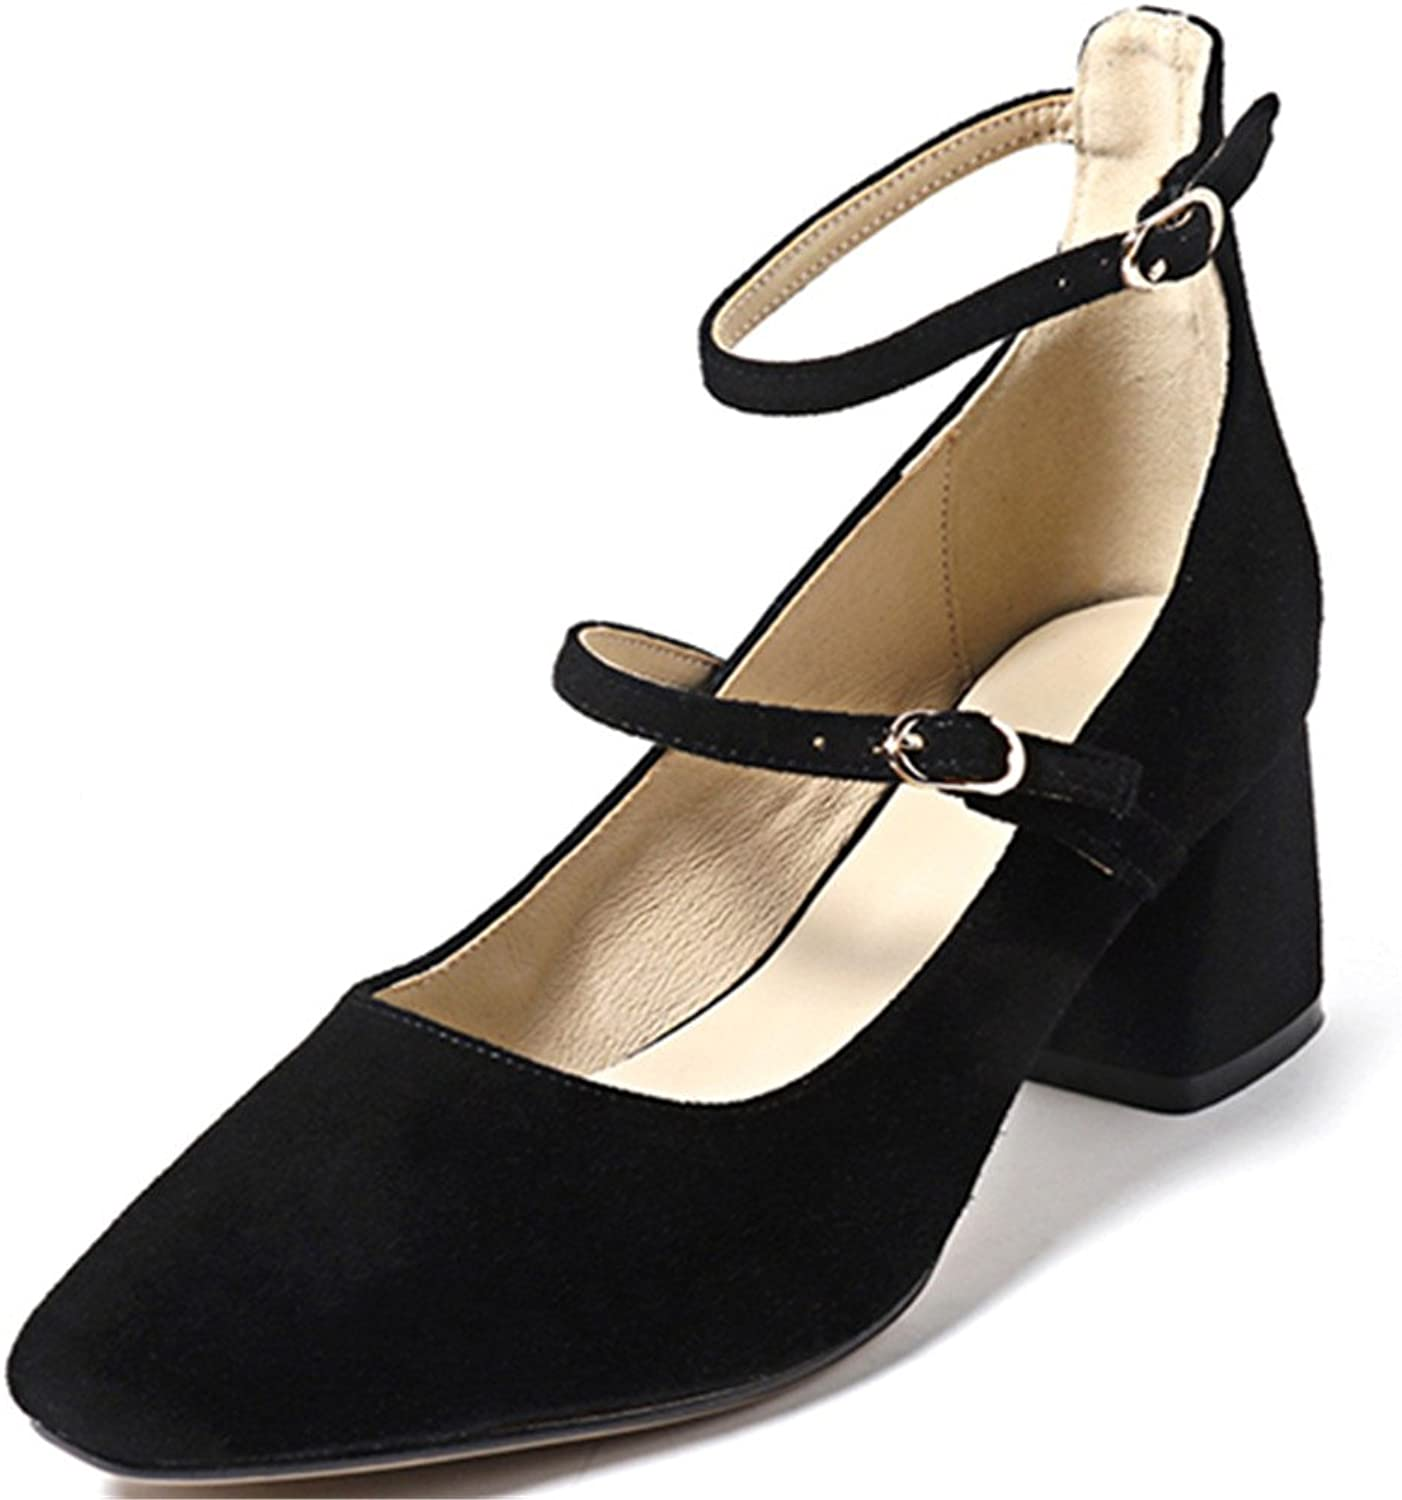 Nine Seven Suede Leather Women's Square Toe Chunky Heel Handmade Ankle Strap Pumps shoes Mary Jane